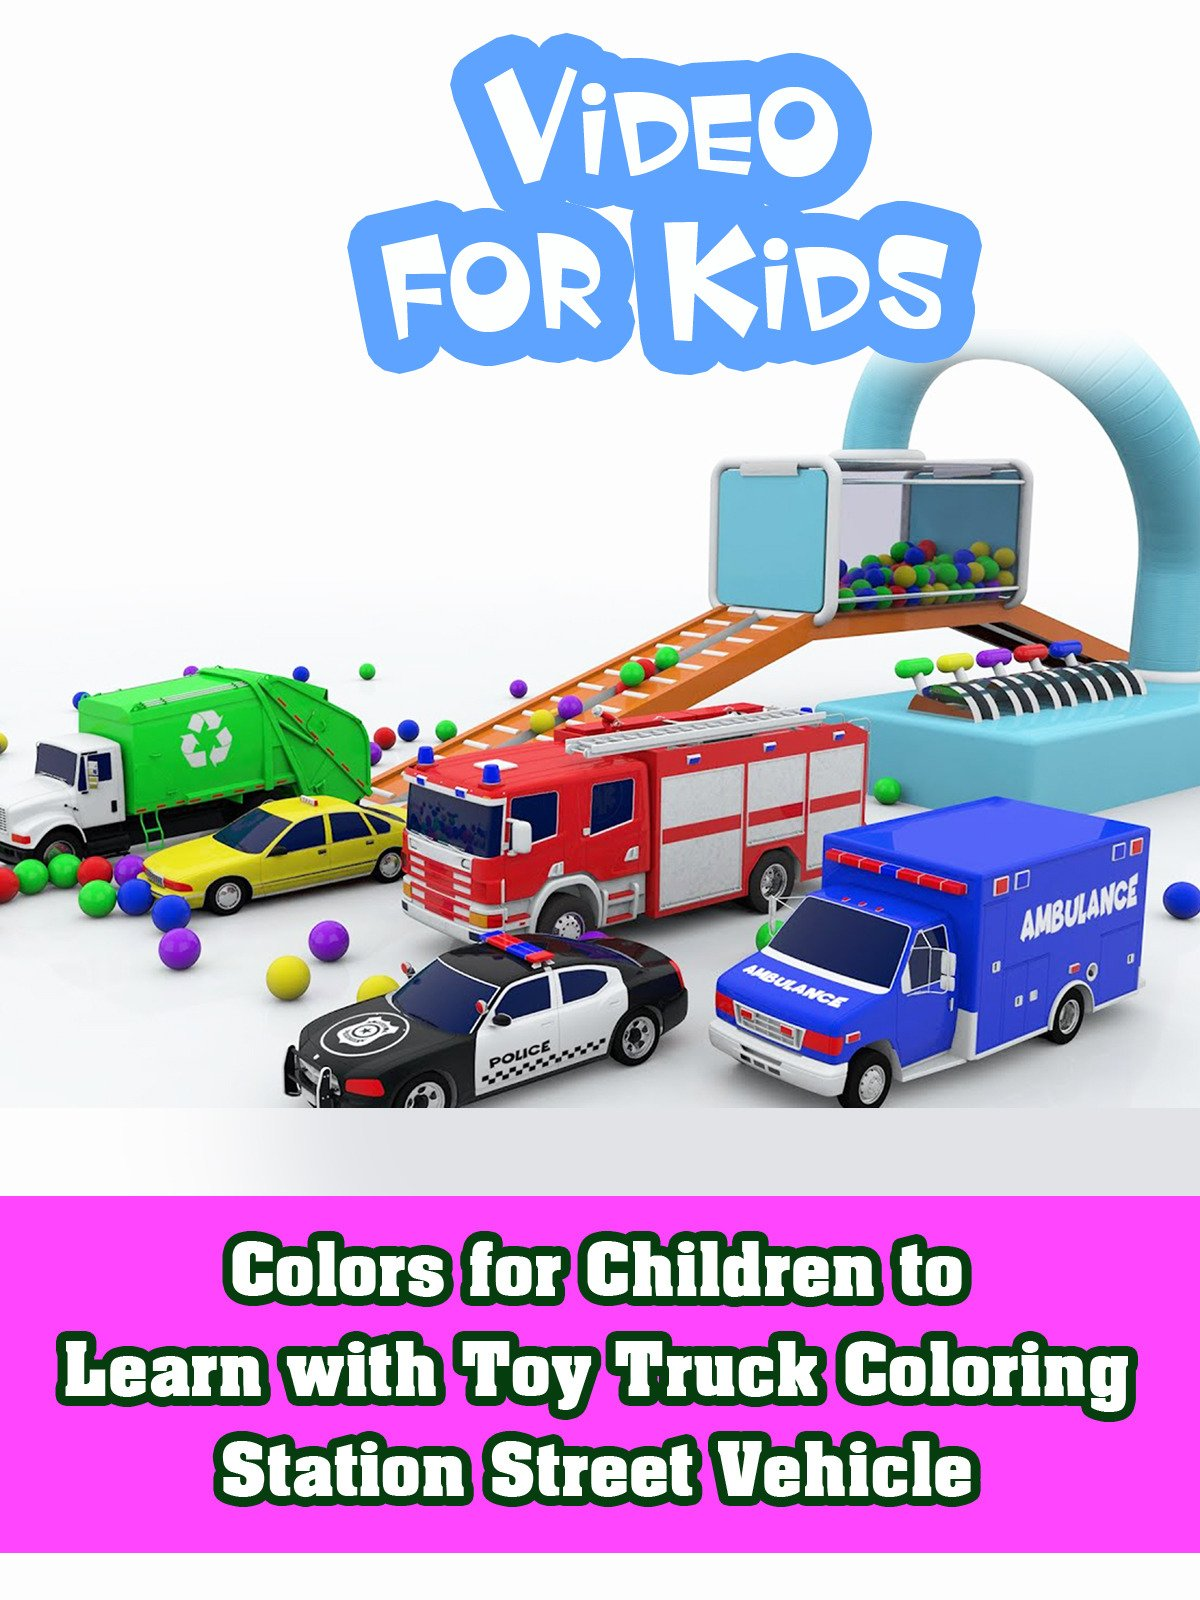 Colors for Children to Learn with Toy Truck Coloring Station Street Vehicle on Amazon Prime Video UK